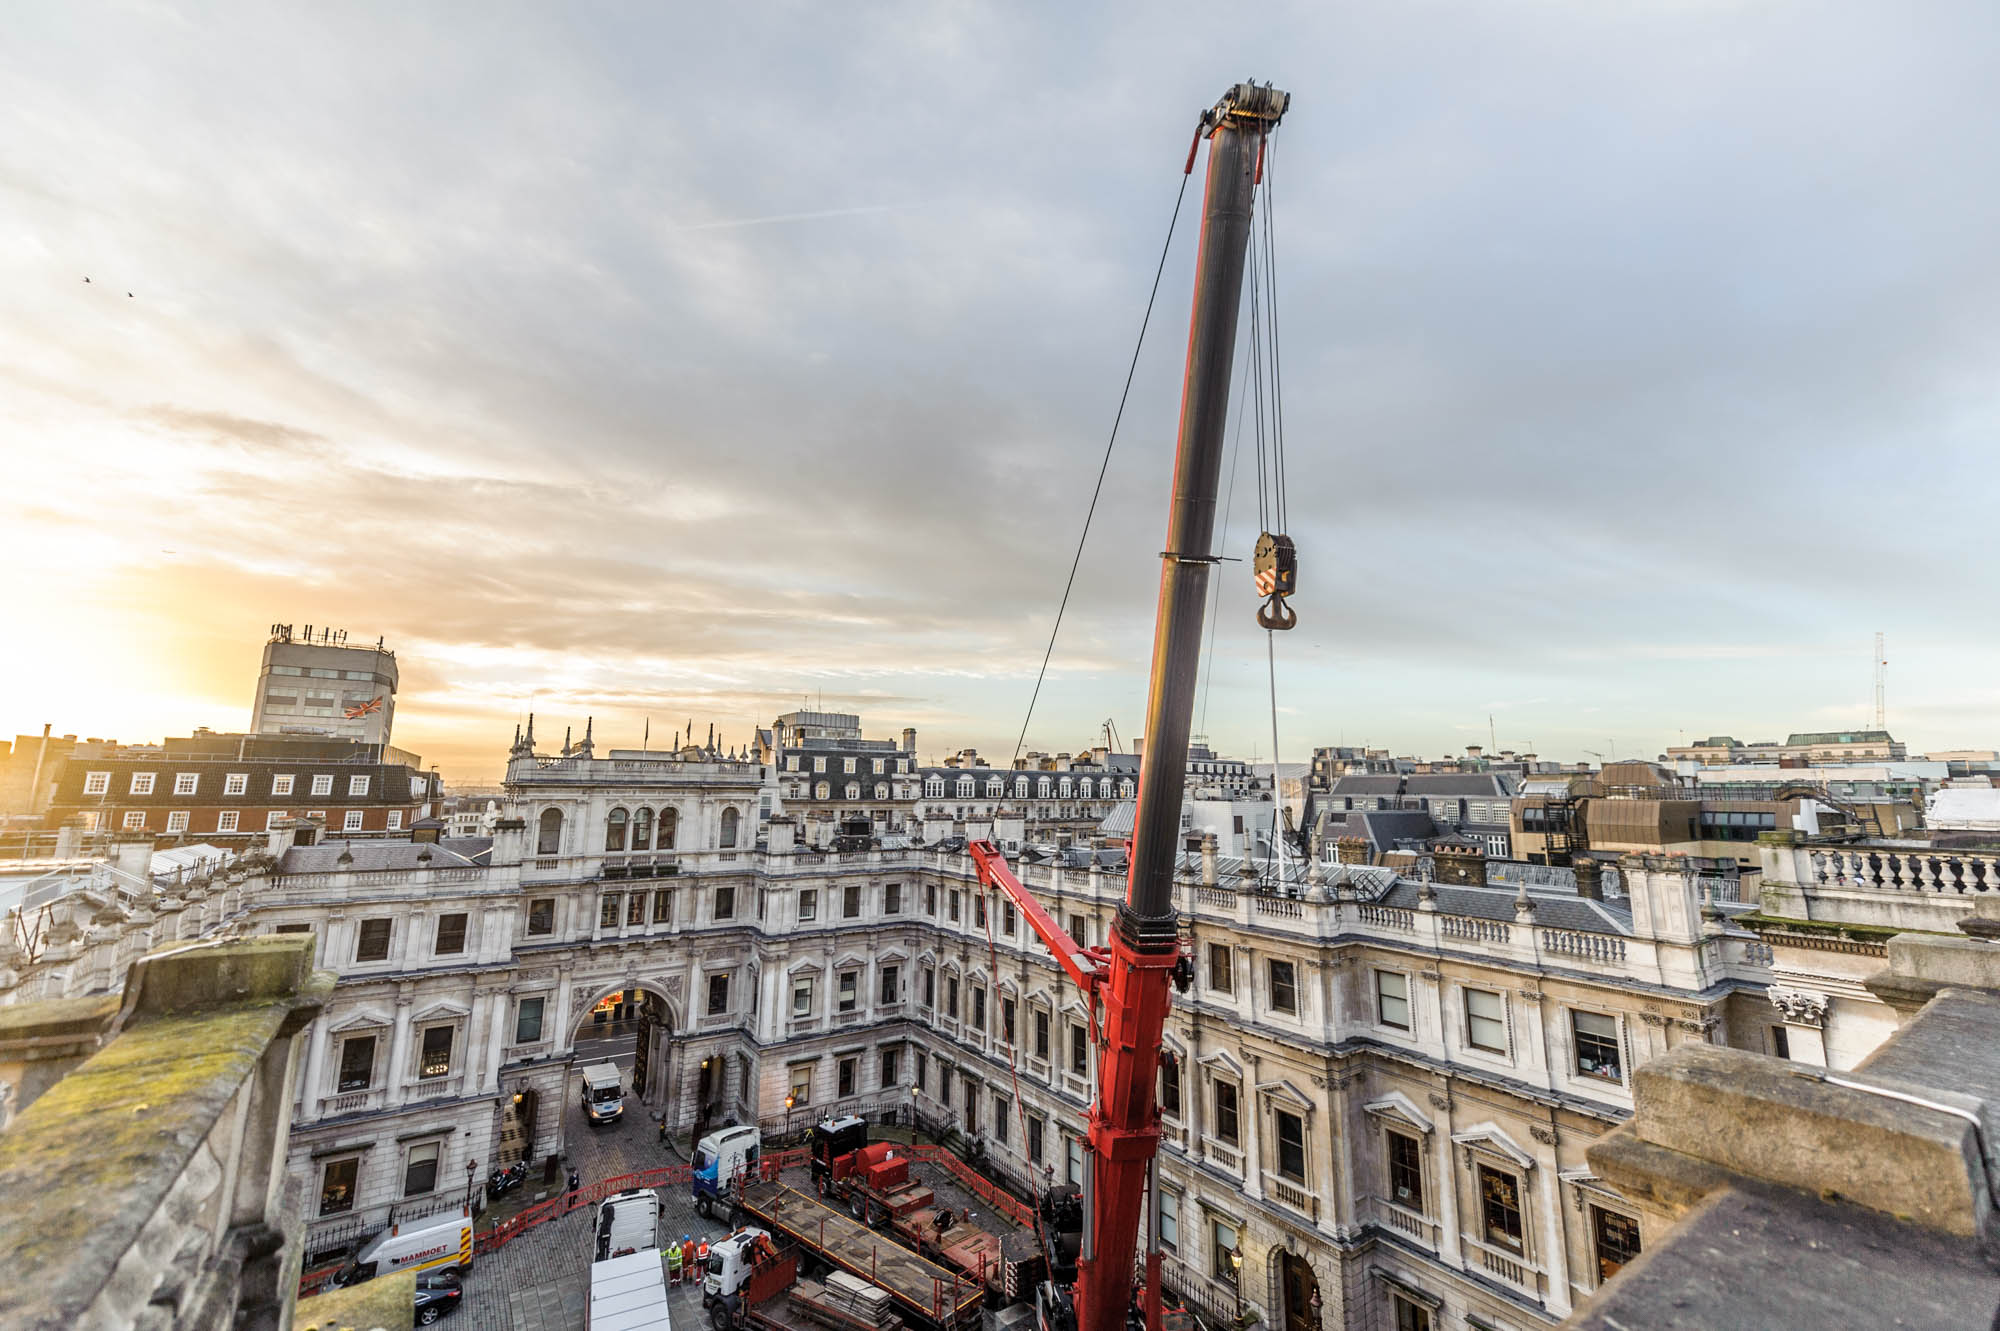 A photo of a crane rising above the london skyline